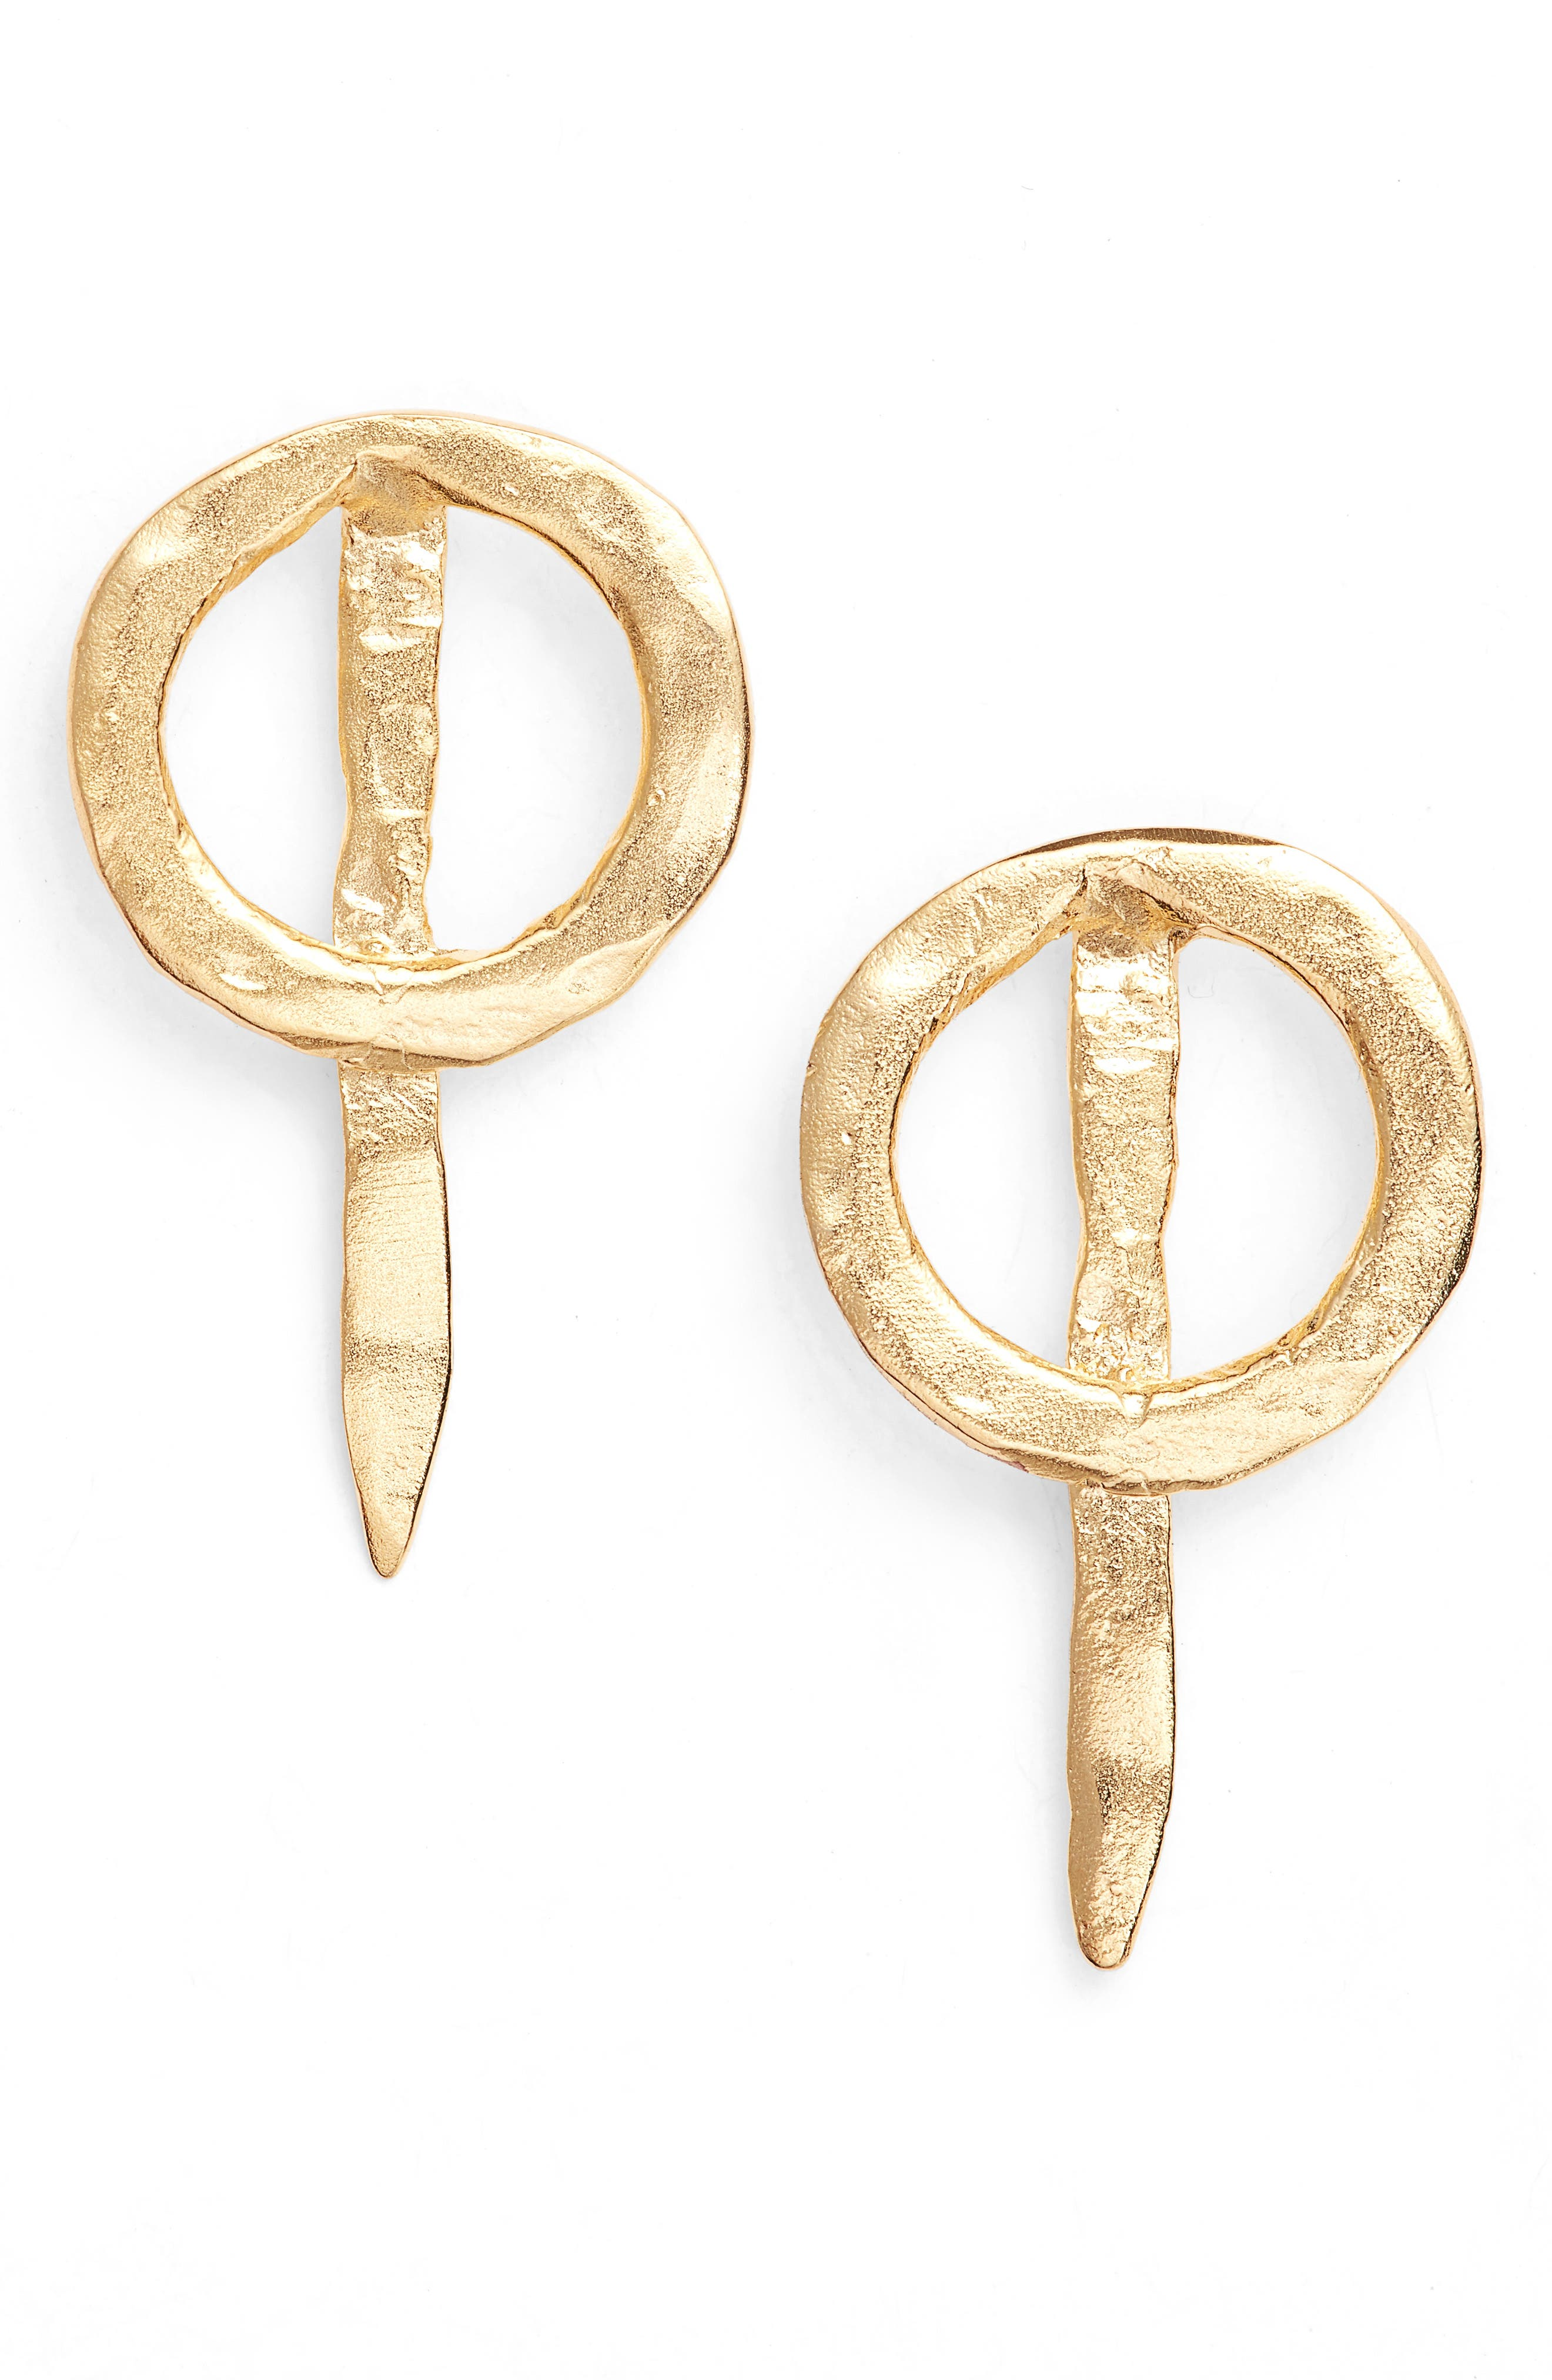 BRITT BOLTON Thorn Drop Earrings